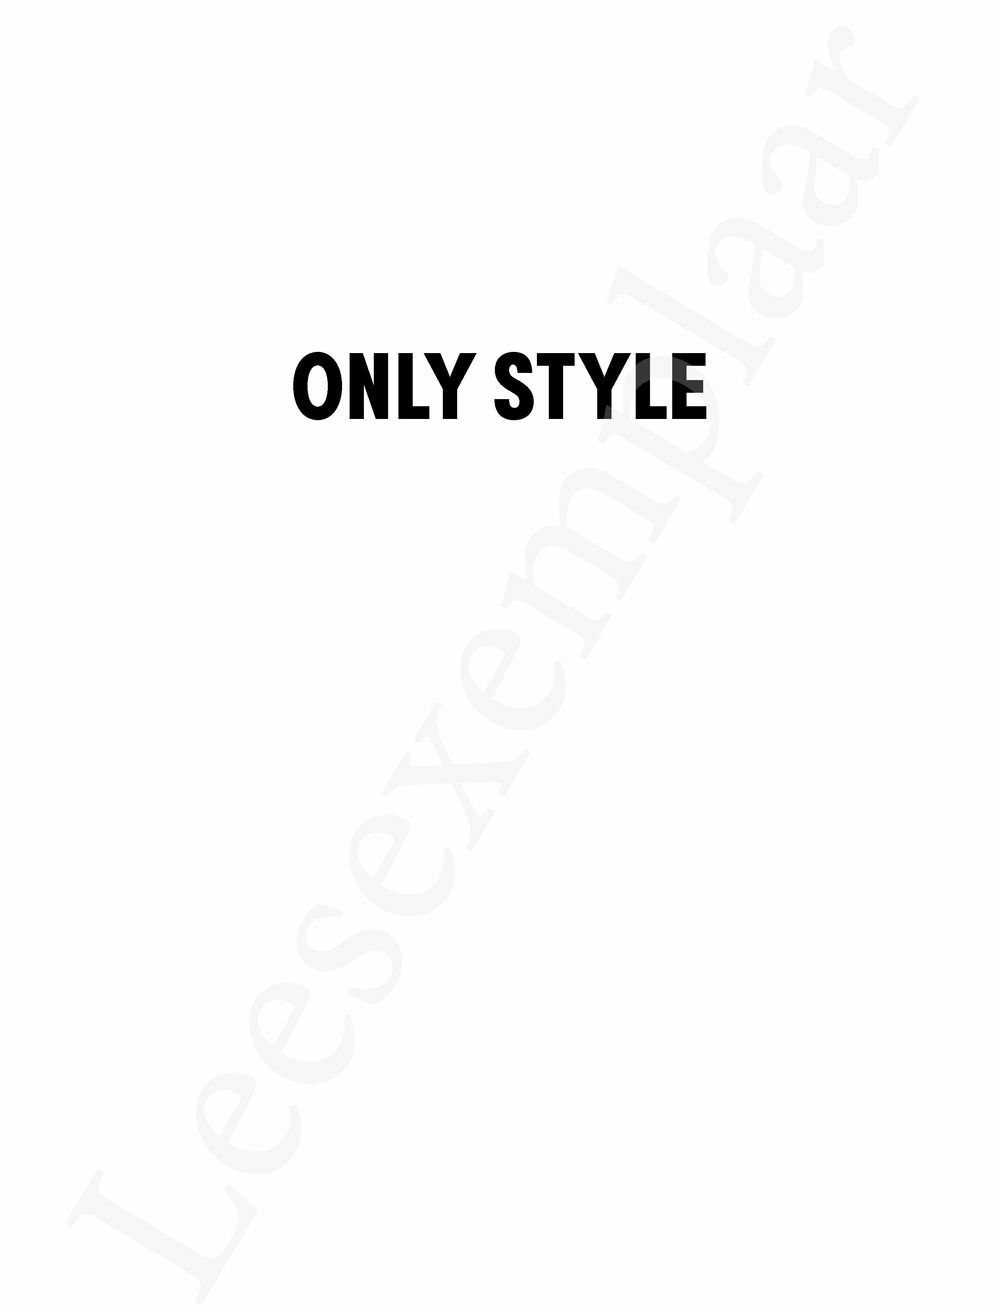 Preview: Only style